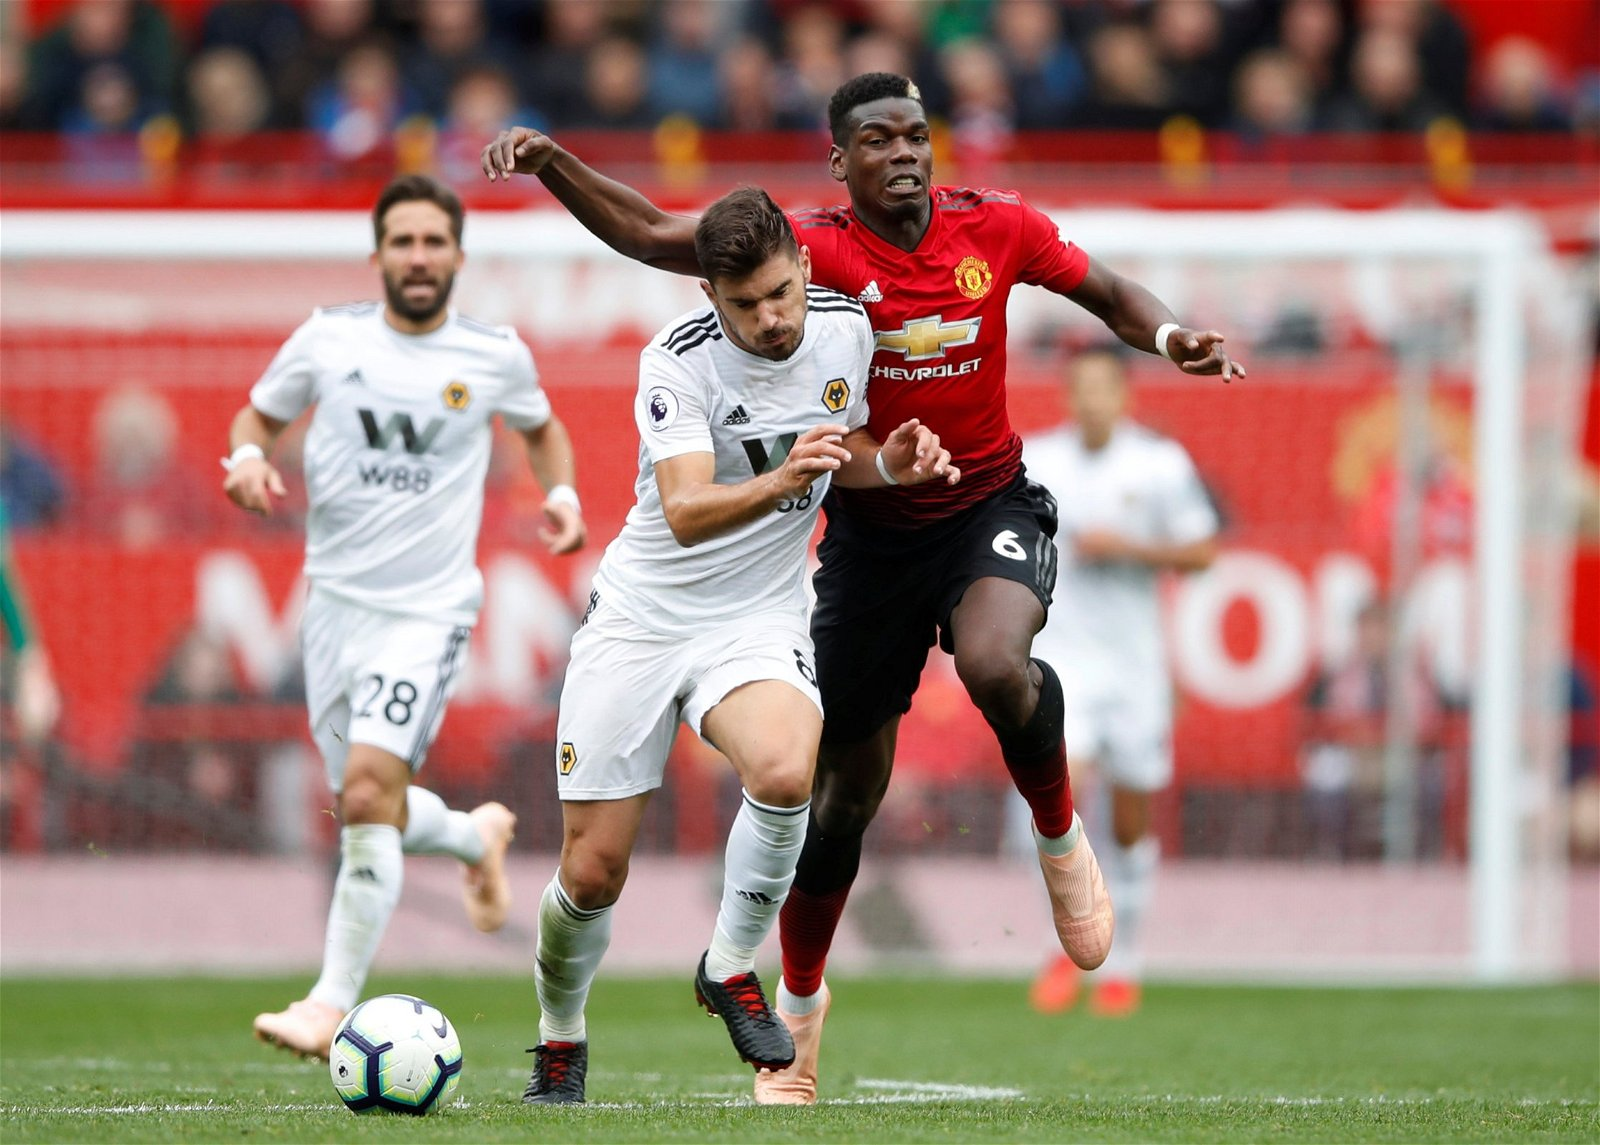 Wolverhampton Wanderers' Ruben Neves slams Manchester United's Paul Pogba to the side